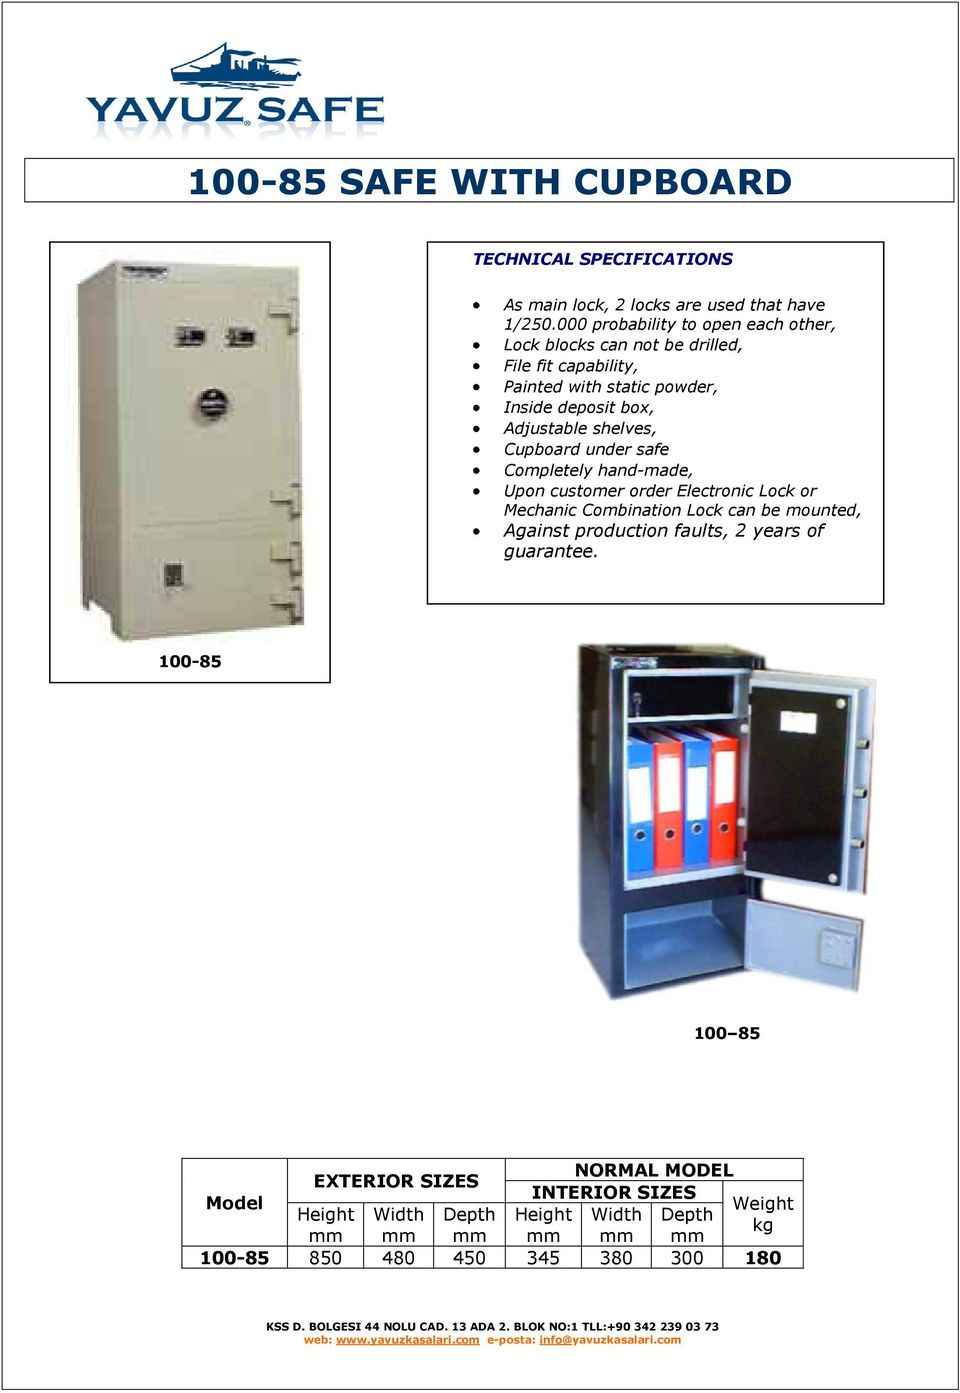 Adjustable shelves, Cupboard under safe Completely hand-made, Upon customer order Electronic Lock or Mechanic Combination Lock can be mounted,